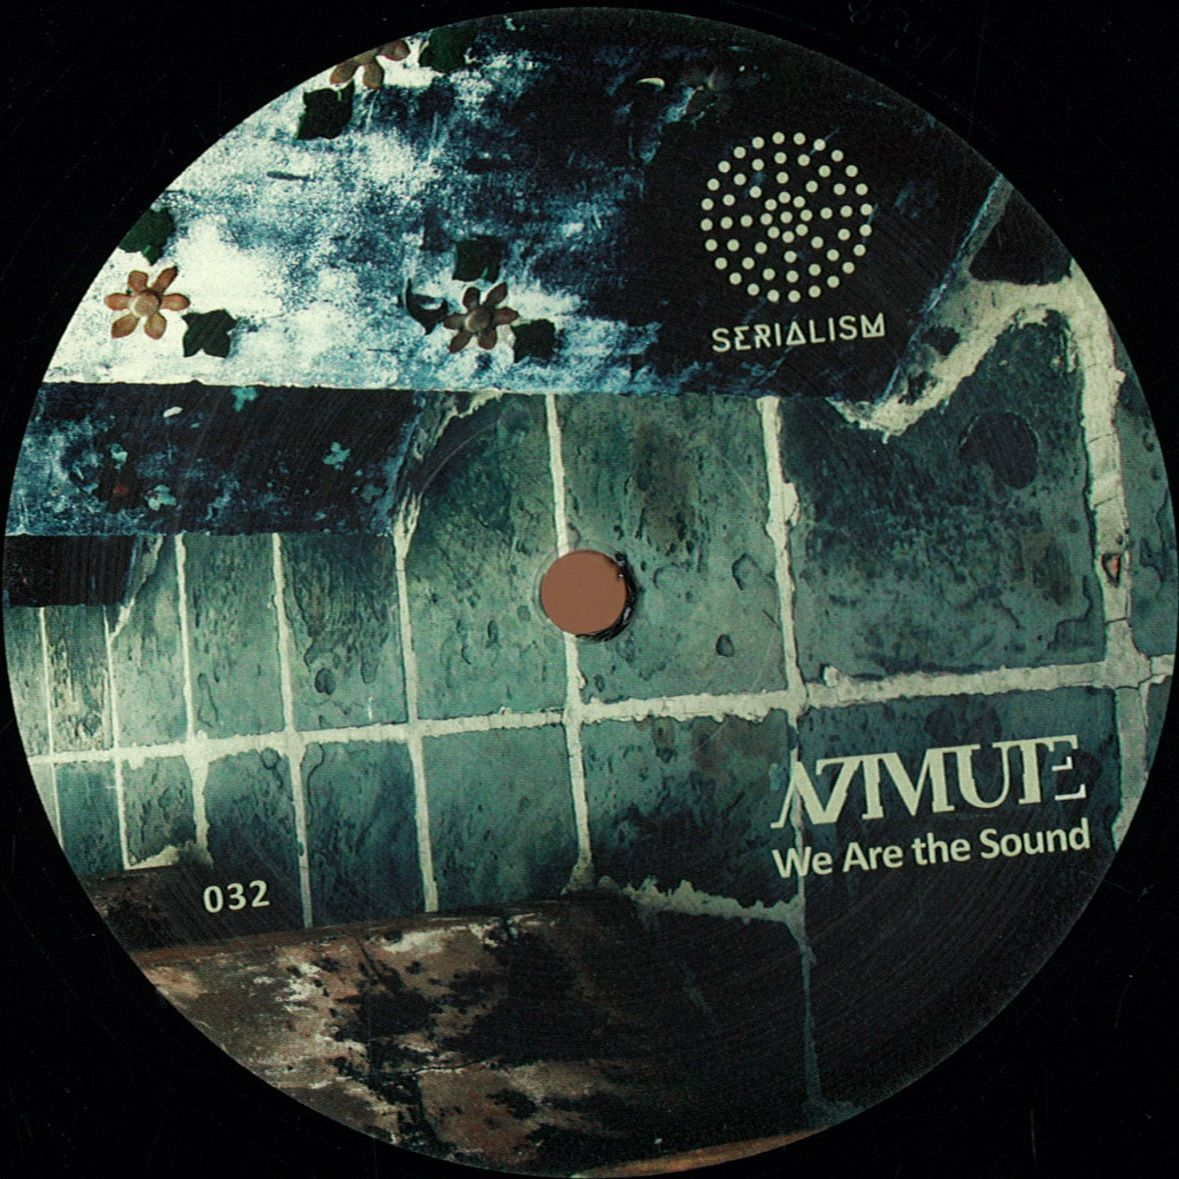 Azimute - We Are The Sound (Serialism)